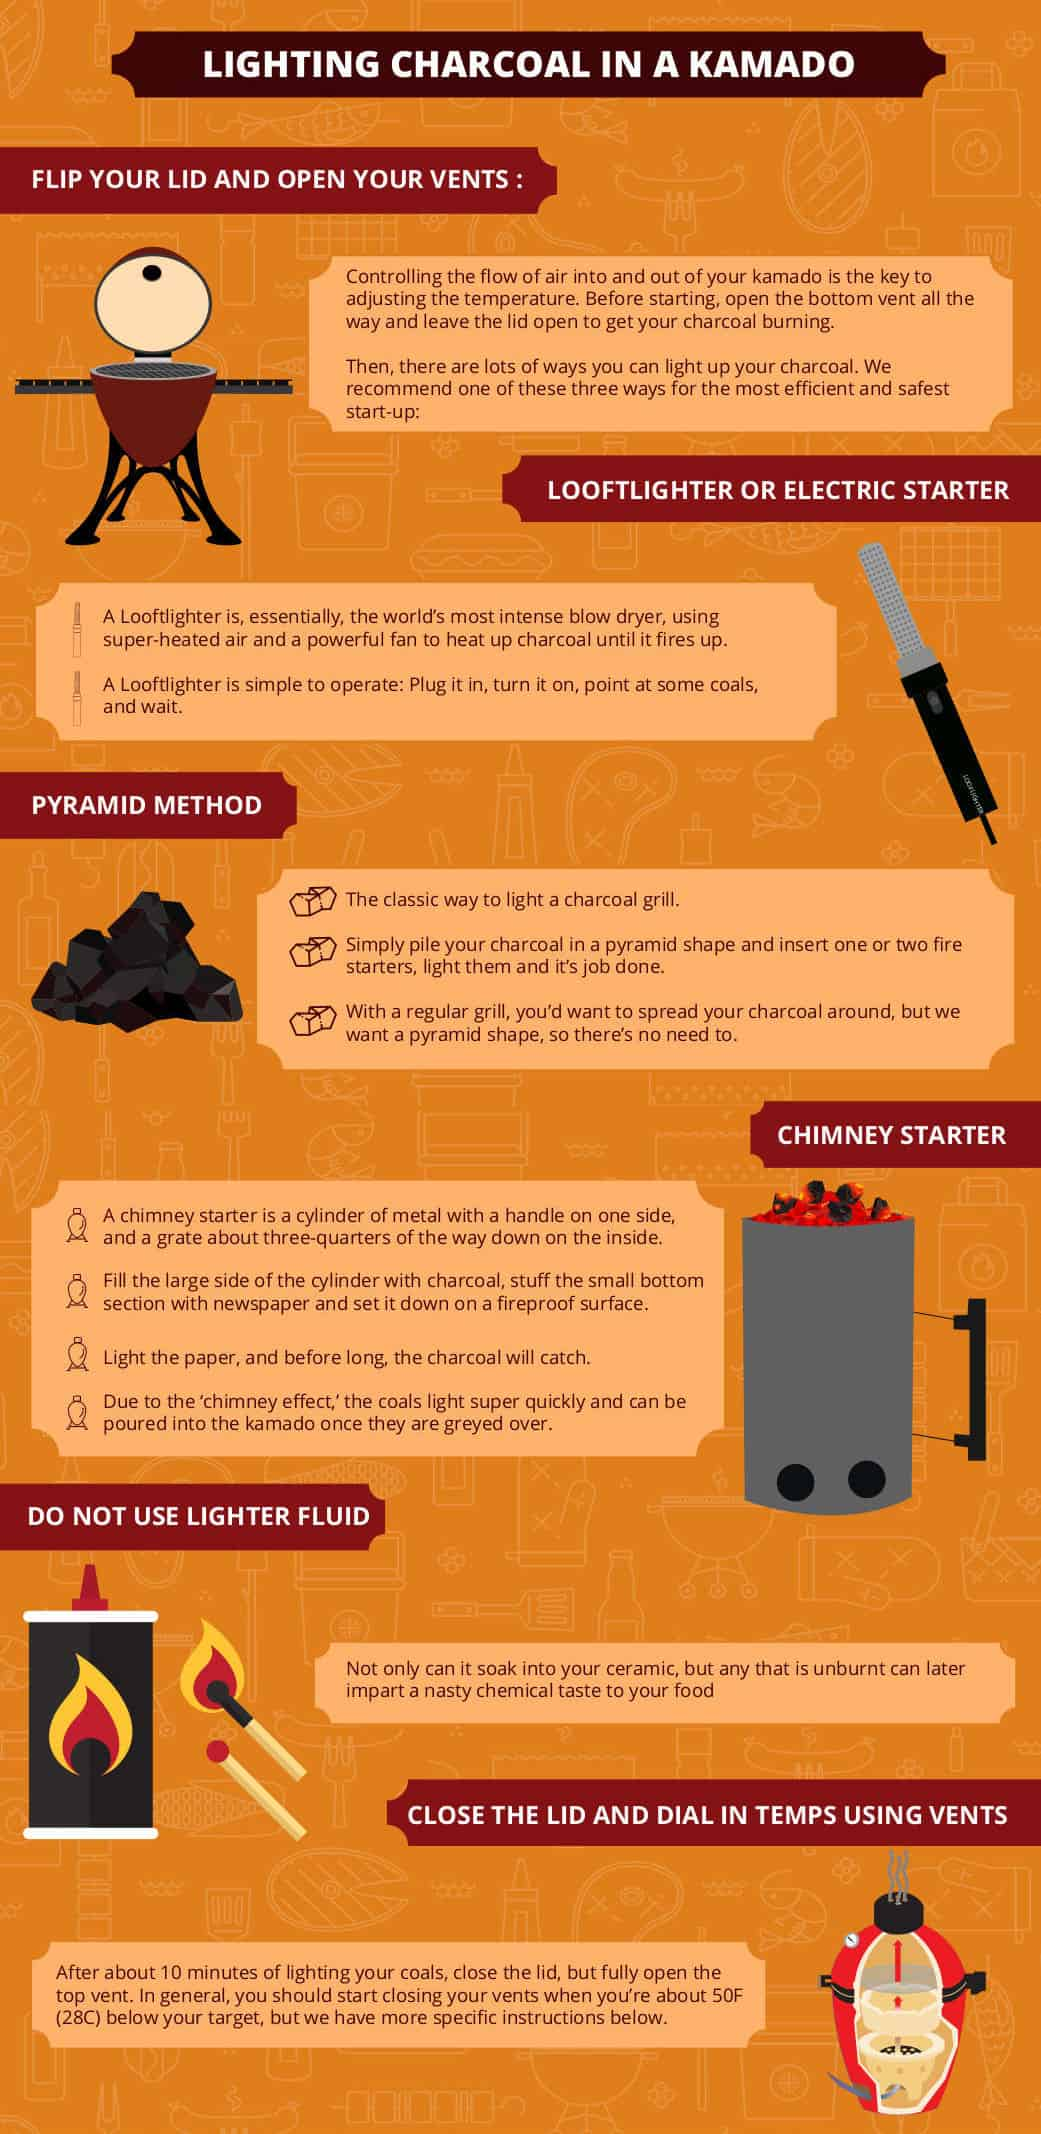 Text graphic detailing ways to light charcoal in a kamado